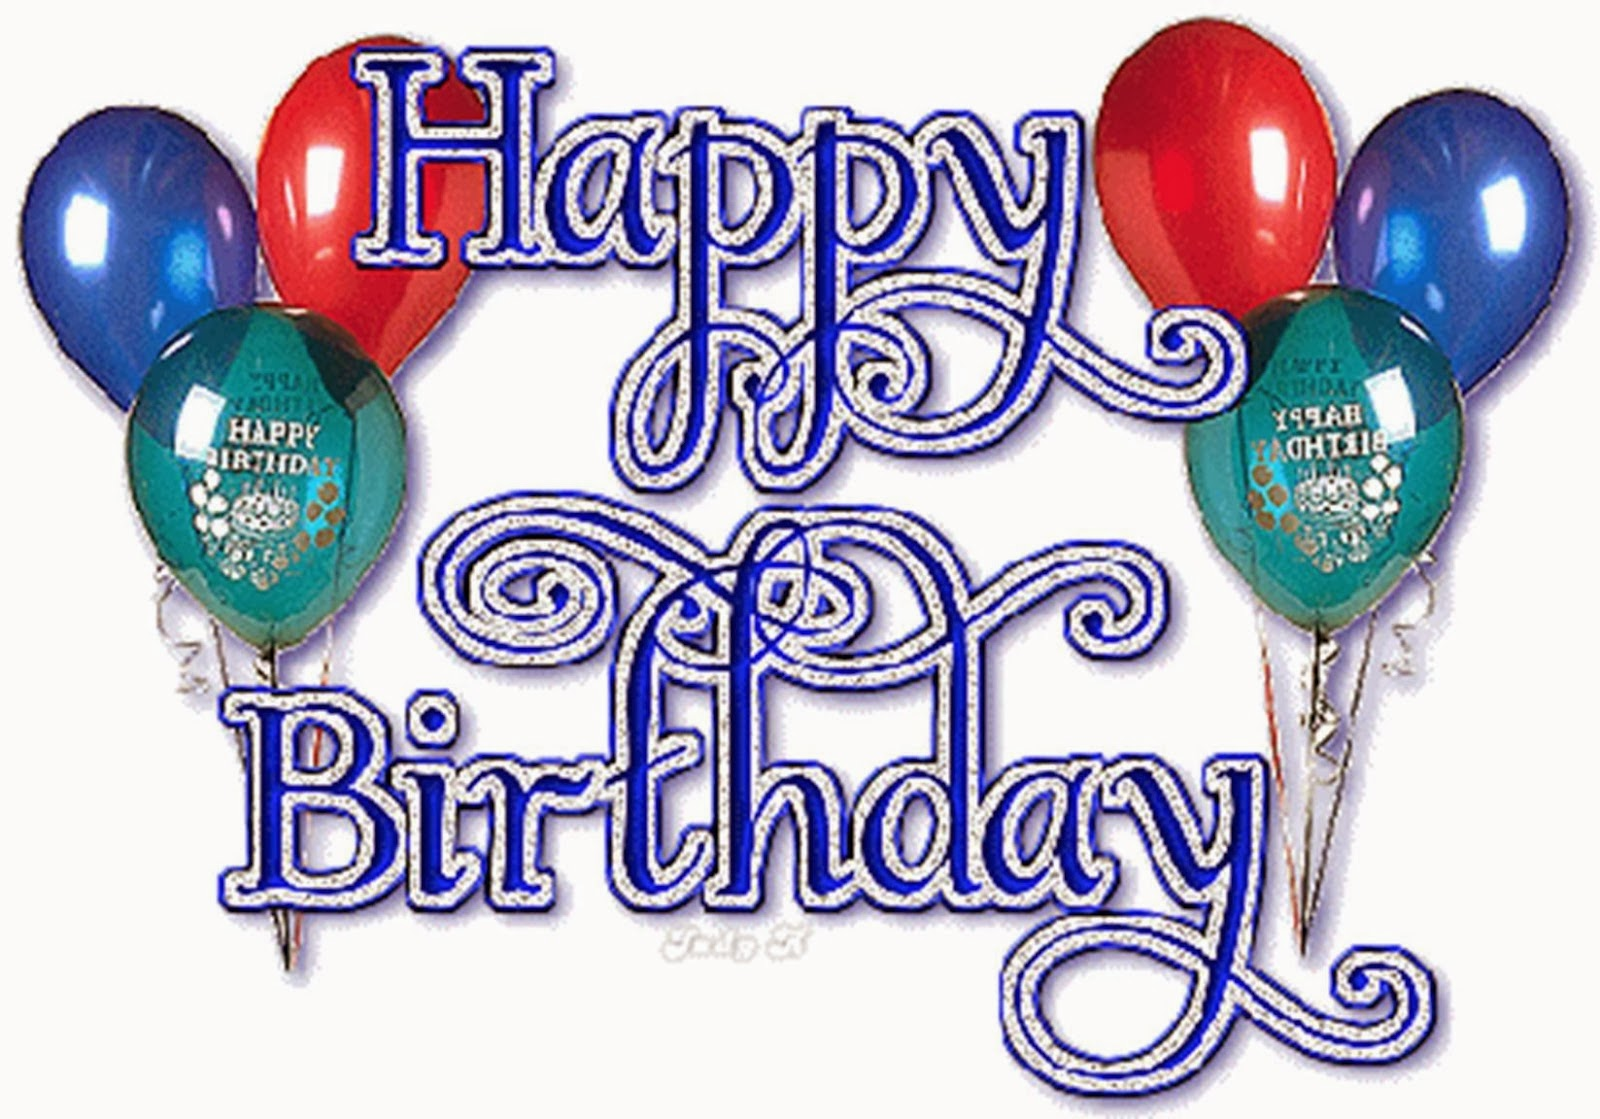 Imageslist com birthday quotes part 1 - Happy Birthday With Letters Part 2